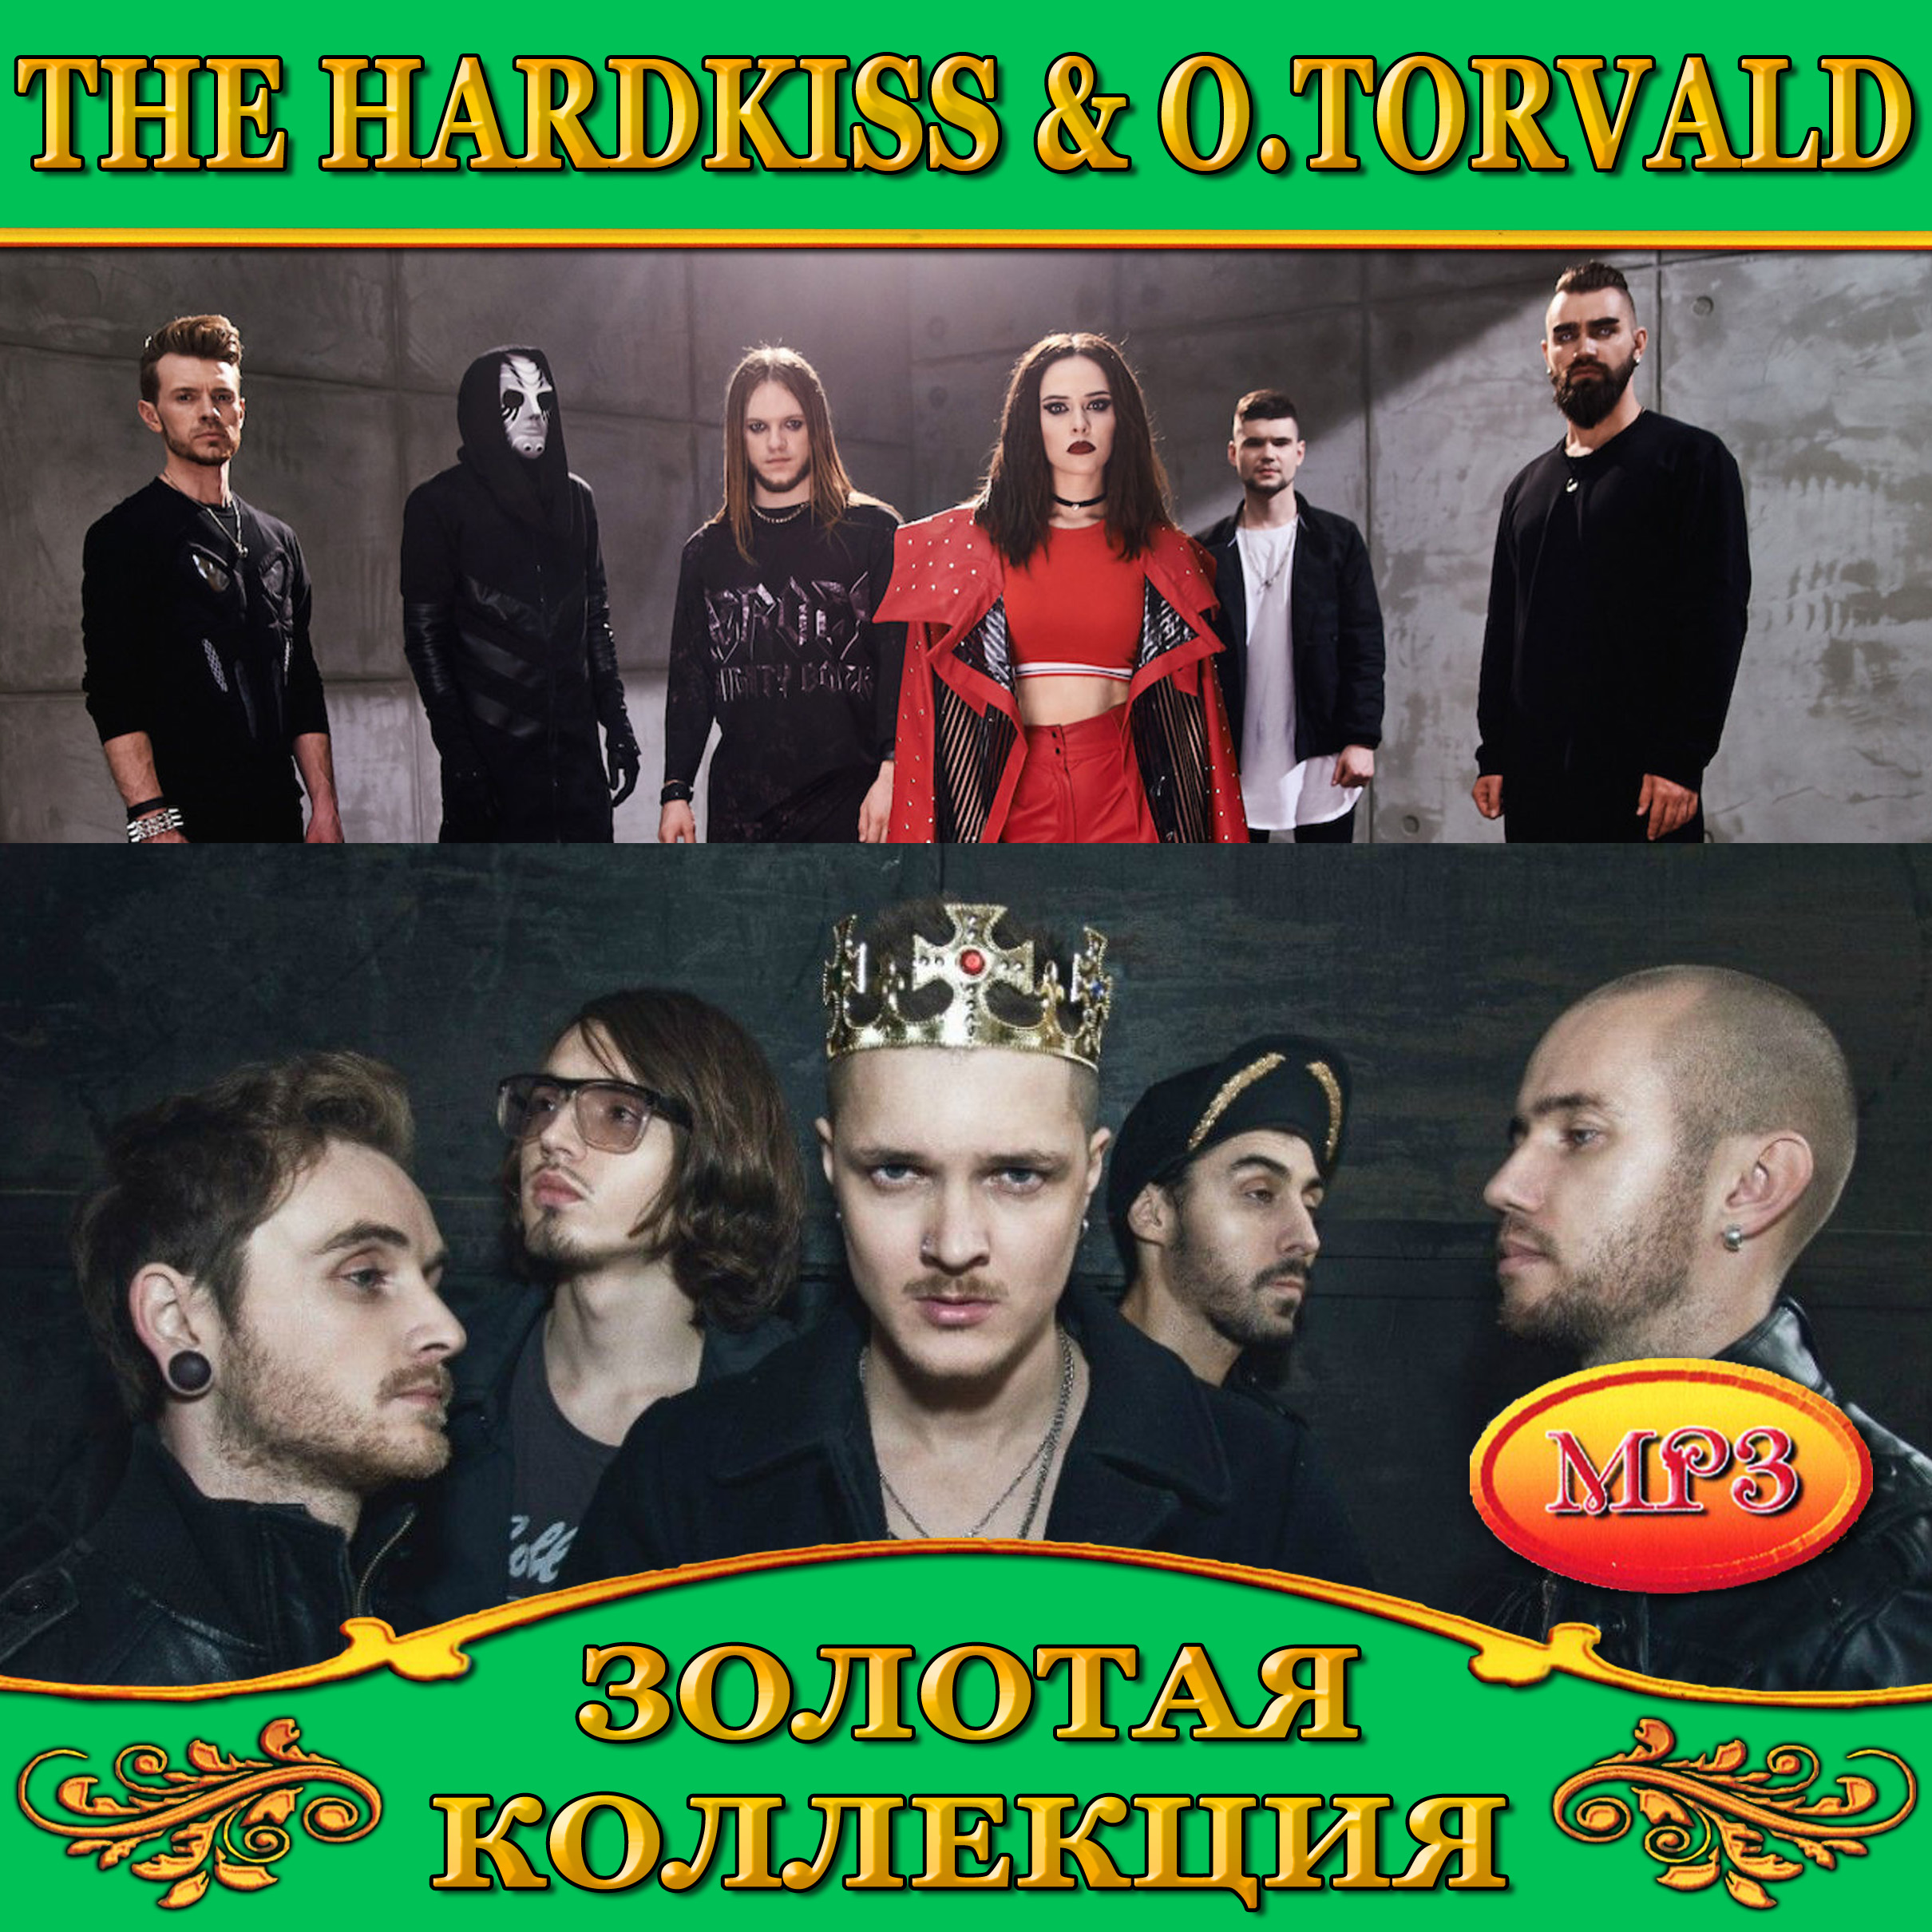 The Hardkiss & O.Torvald [mp3]